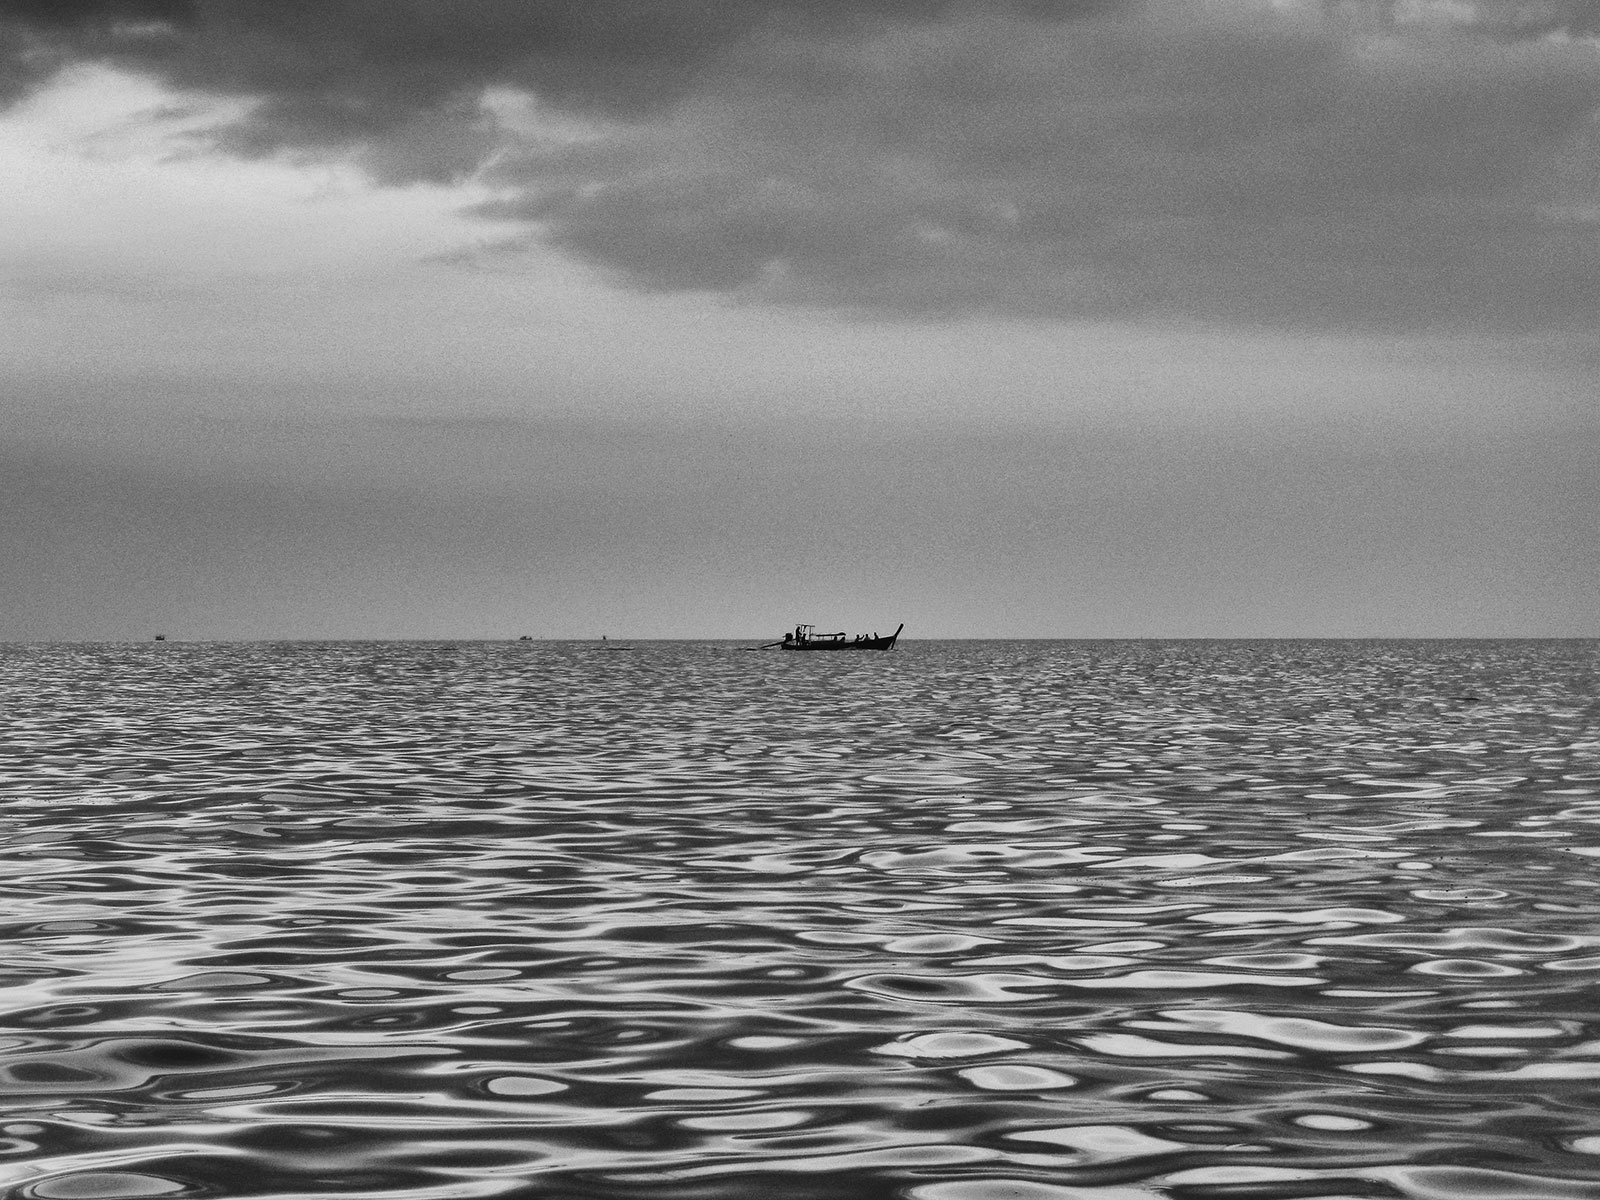 Black and White Photo of Sea with a fishing boat in the centre